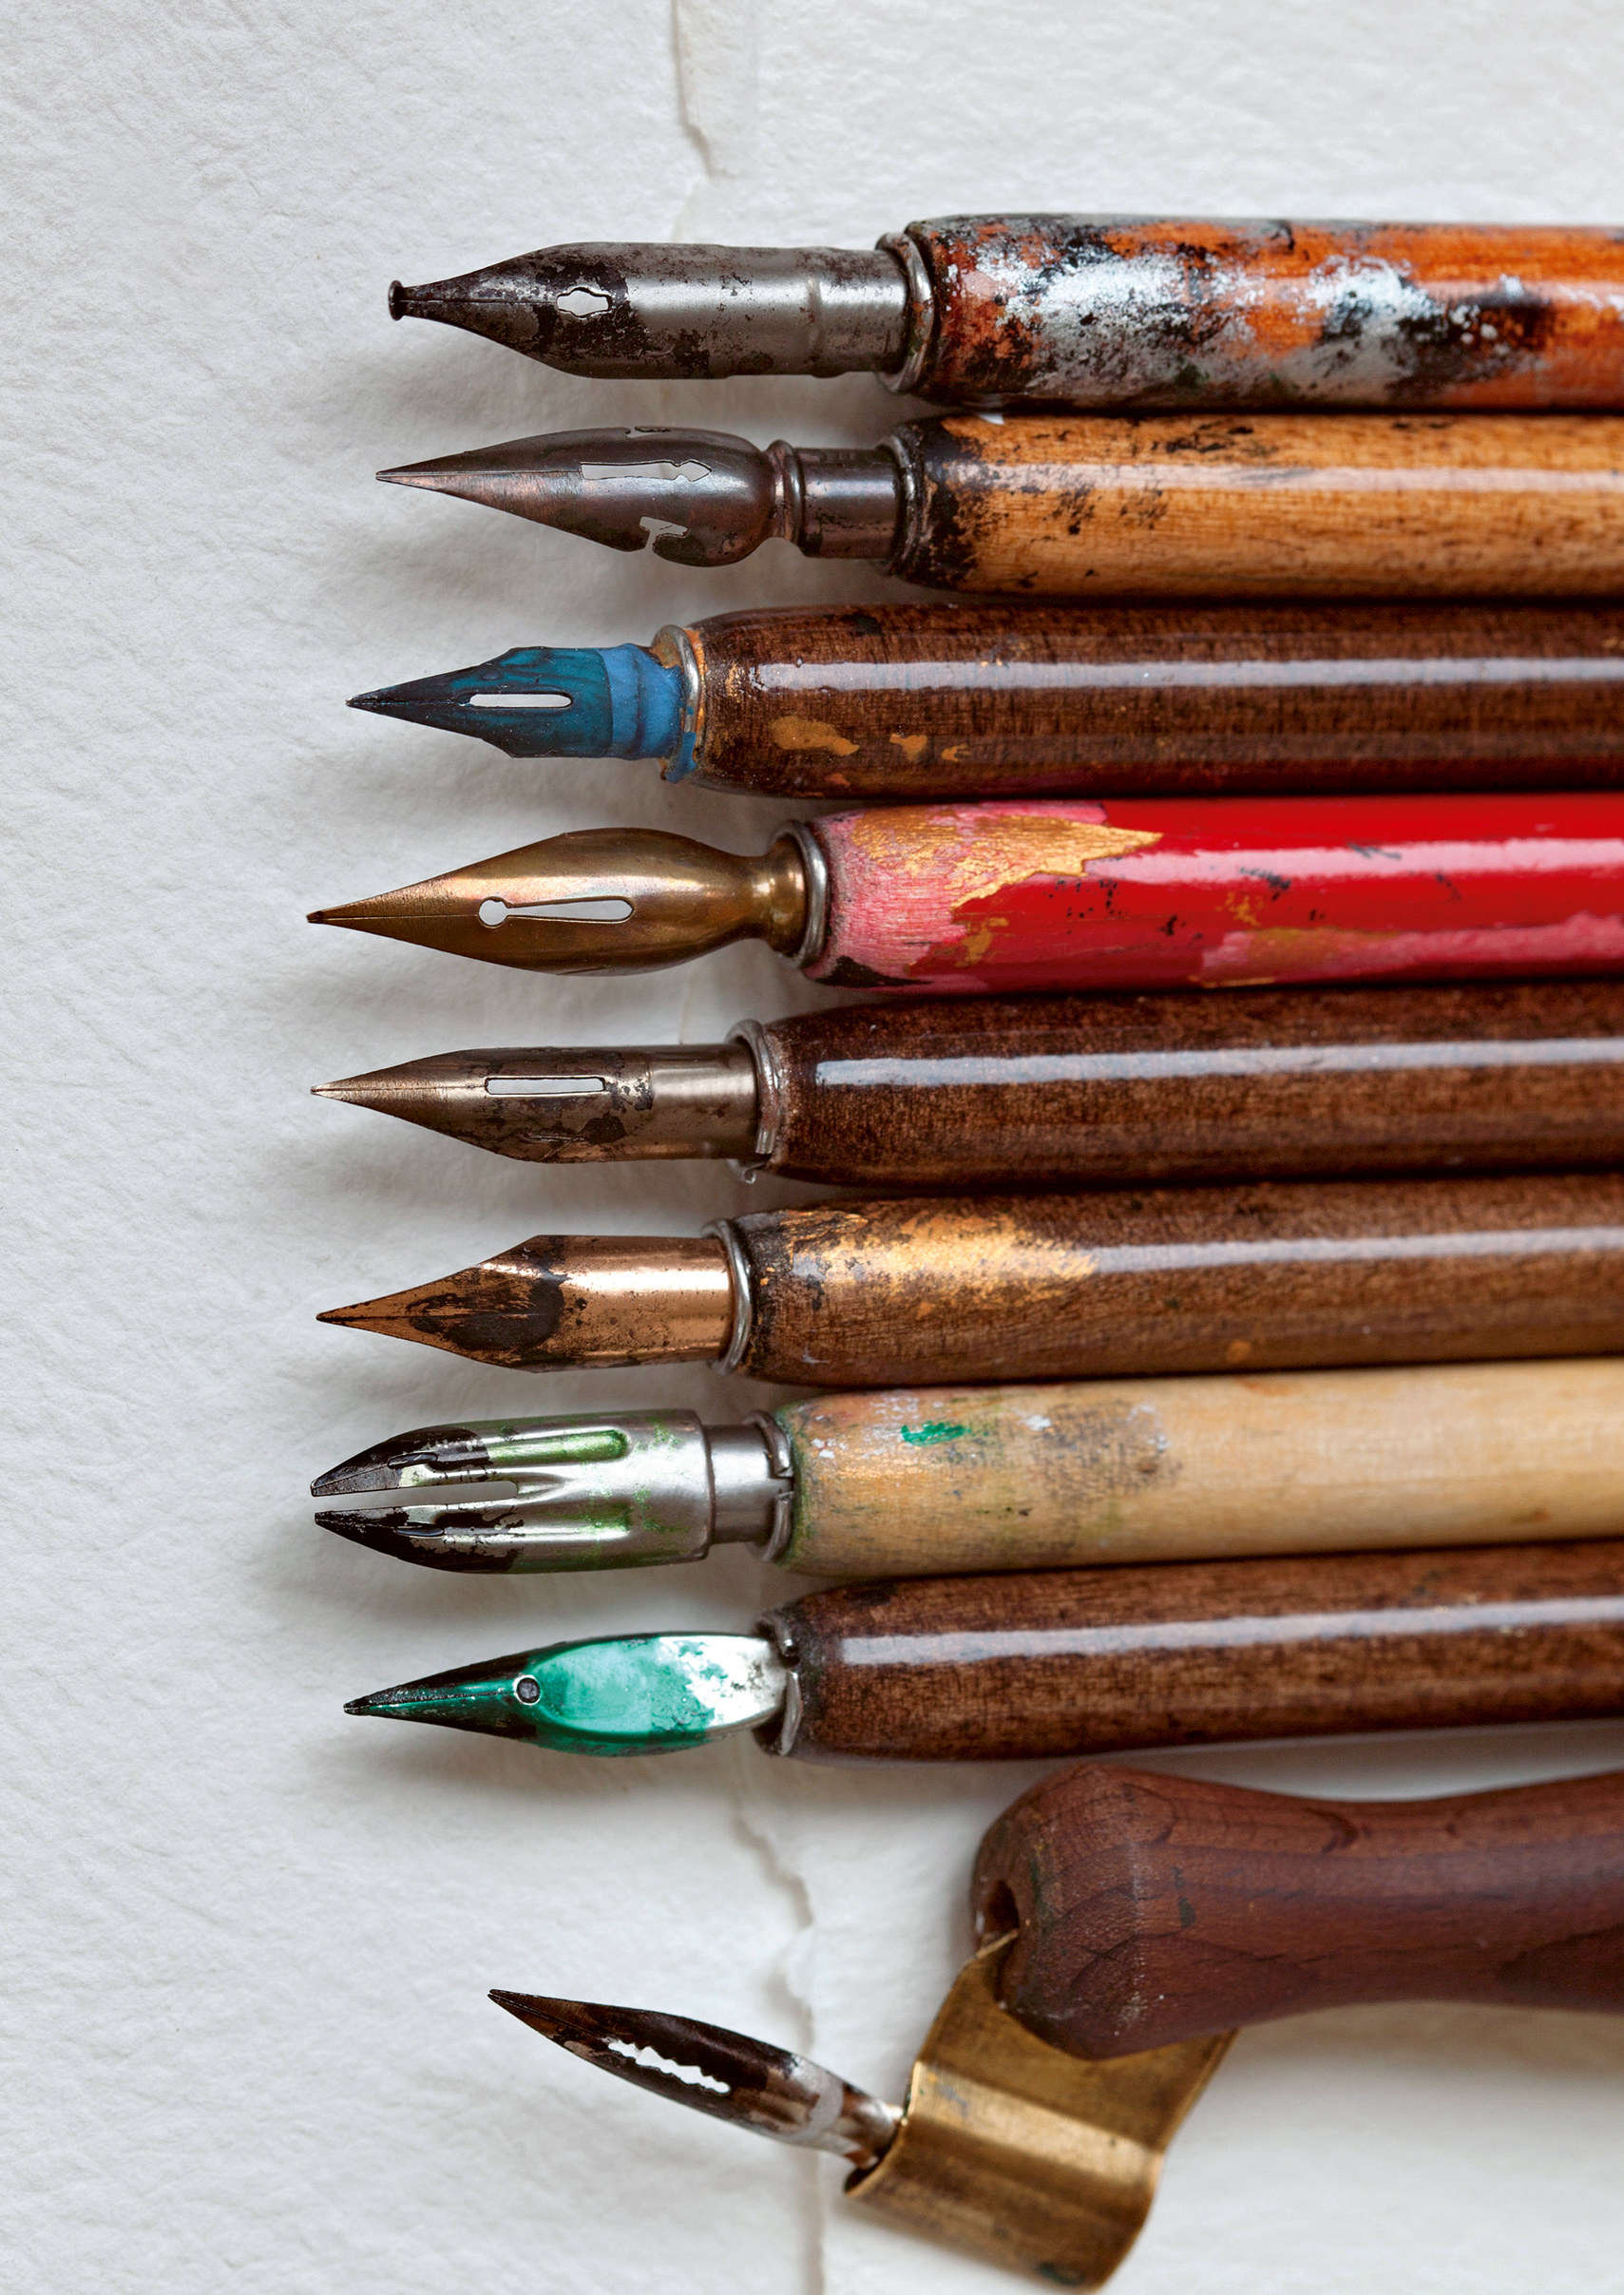 Pens From Living Without Plastic Book by Christine Wong and Brigette Allen, Photo via Besjunior and Adobe Stock